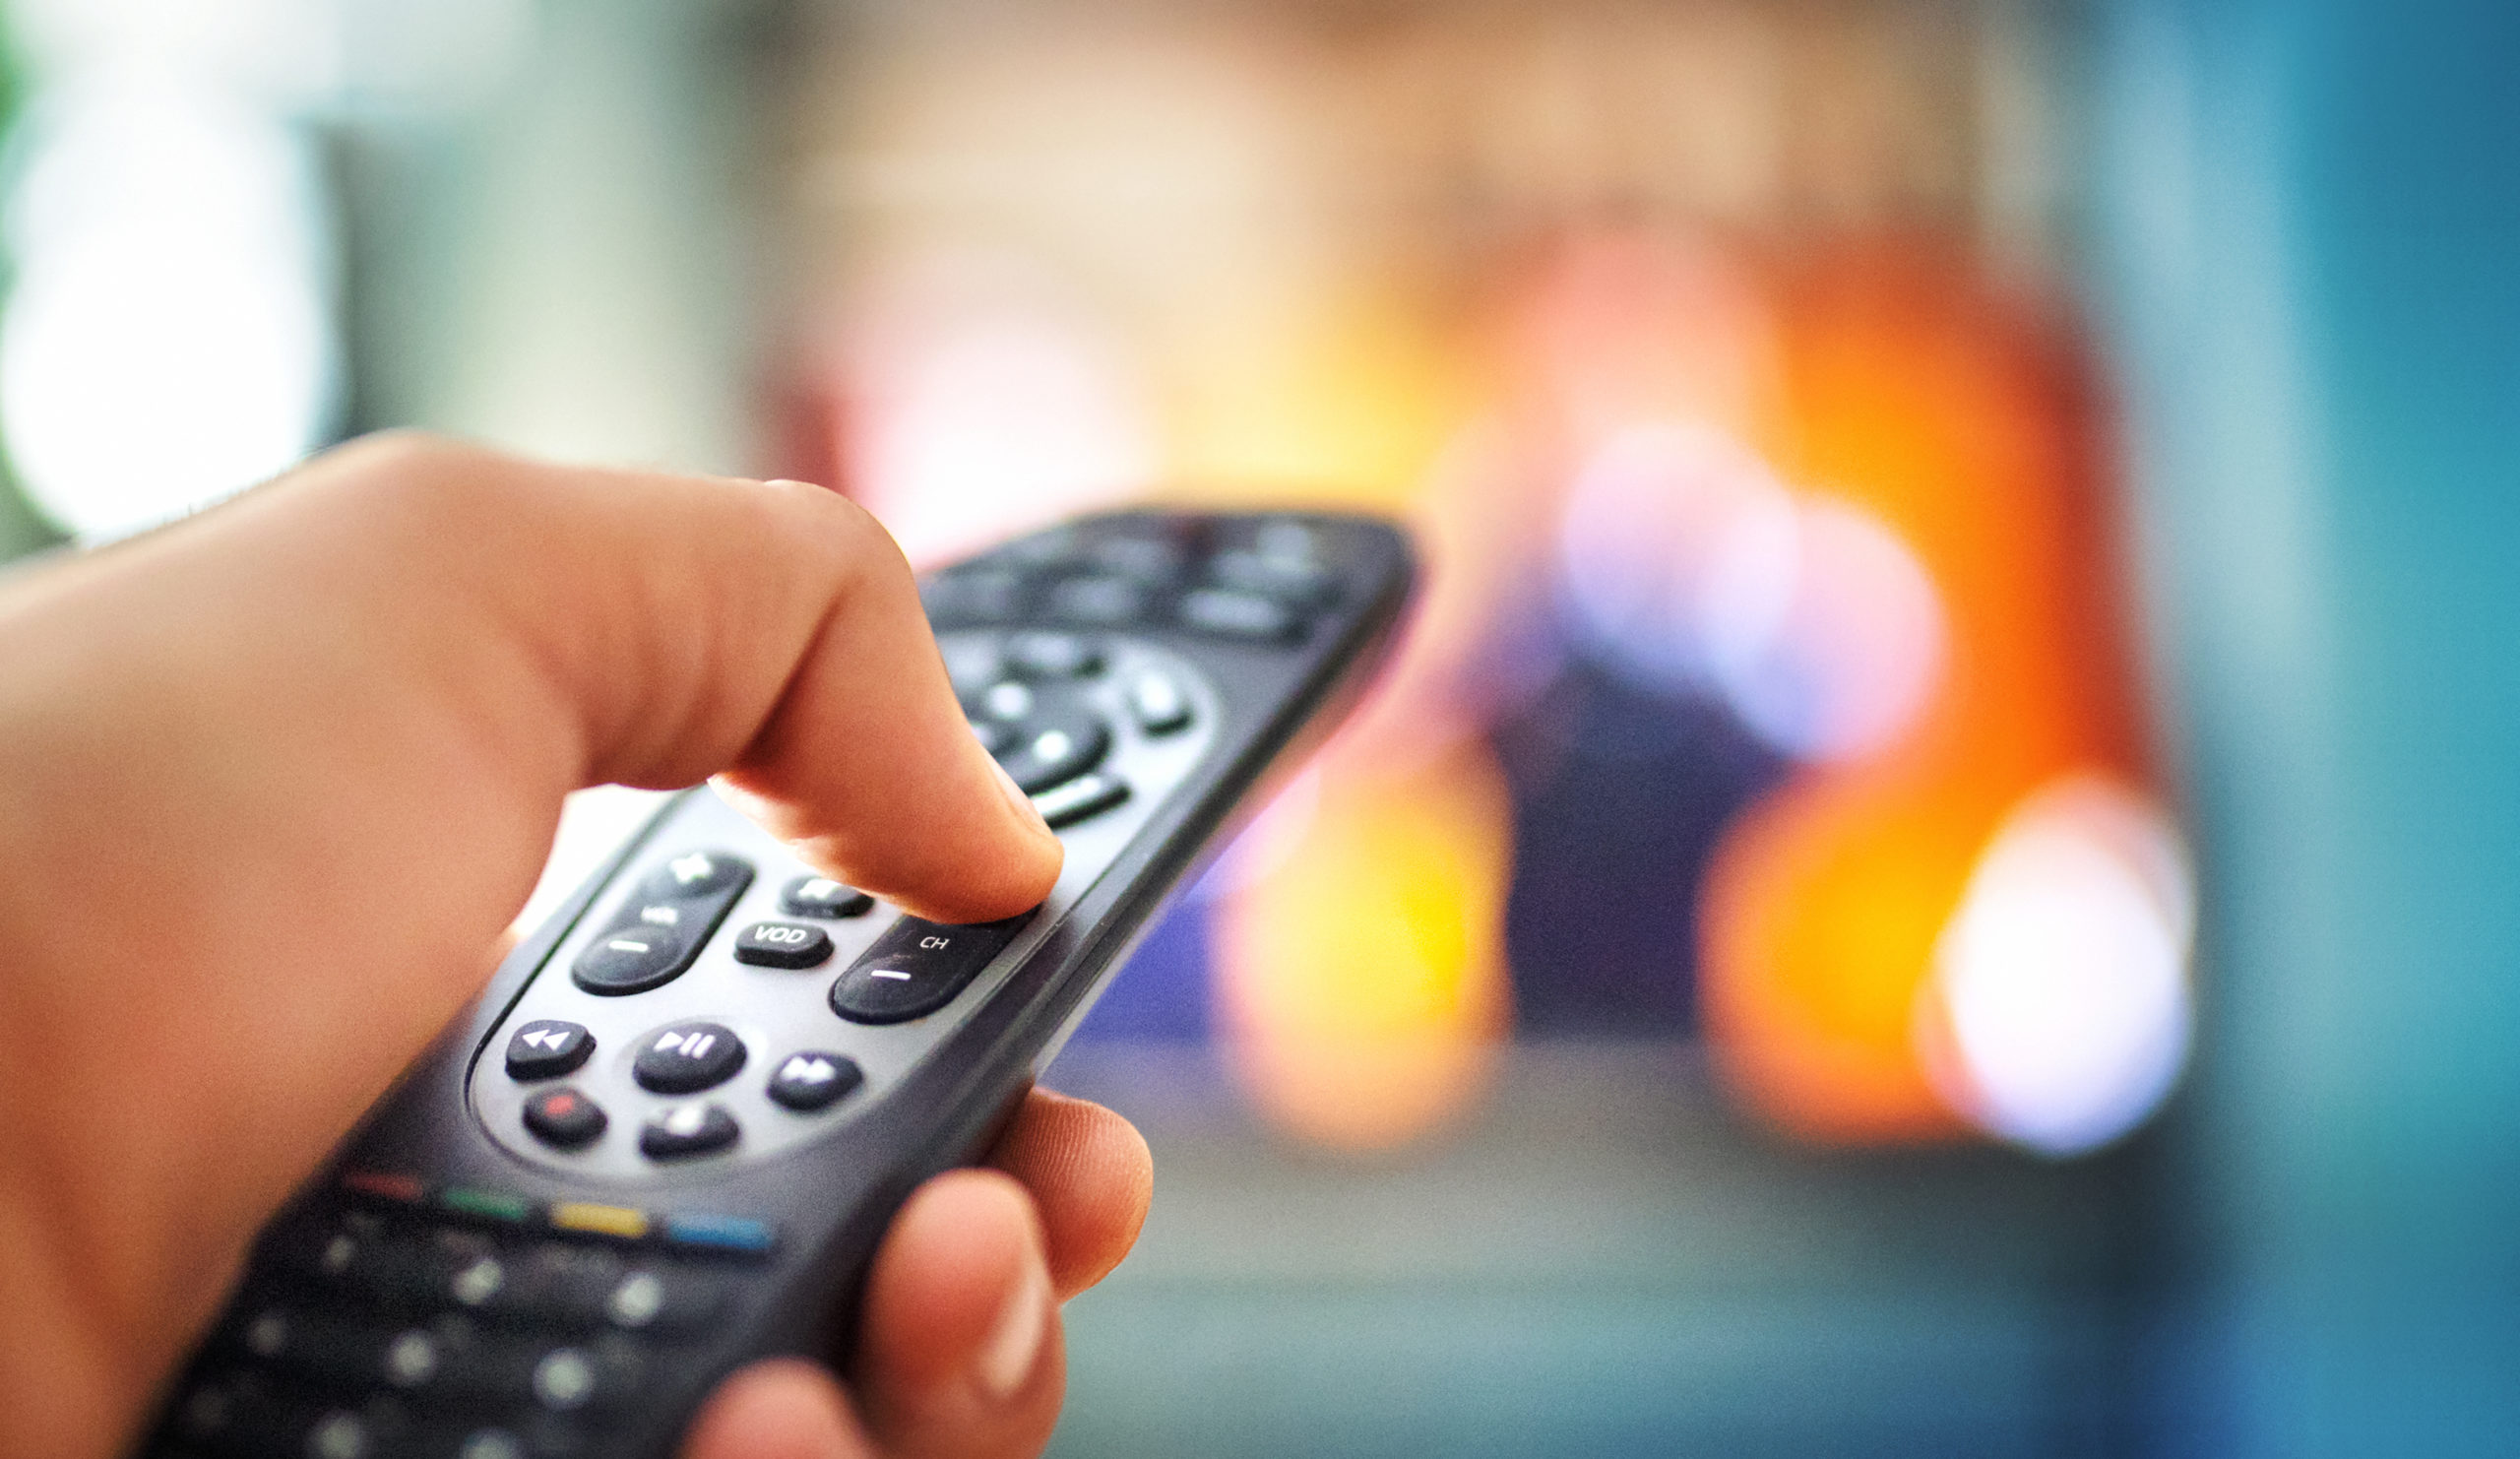 a hand using a tv remote control